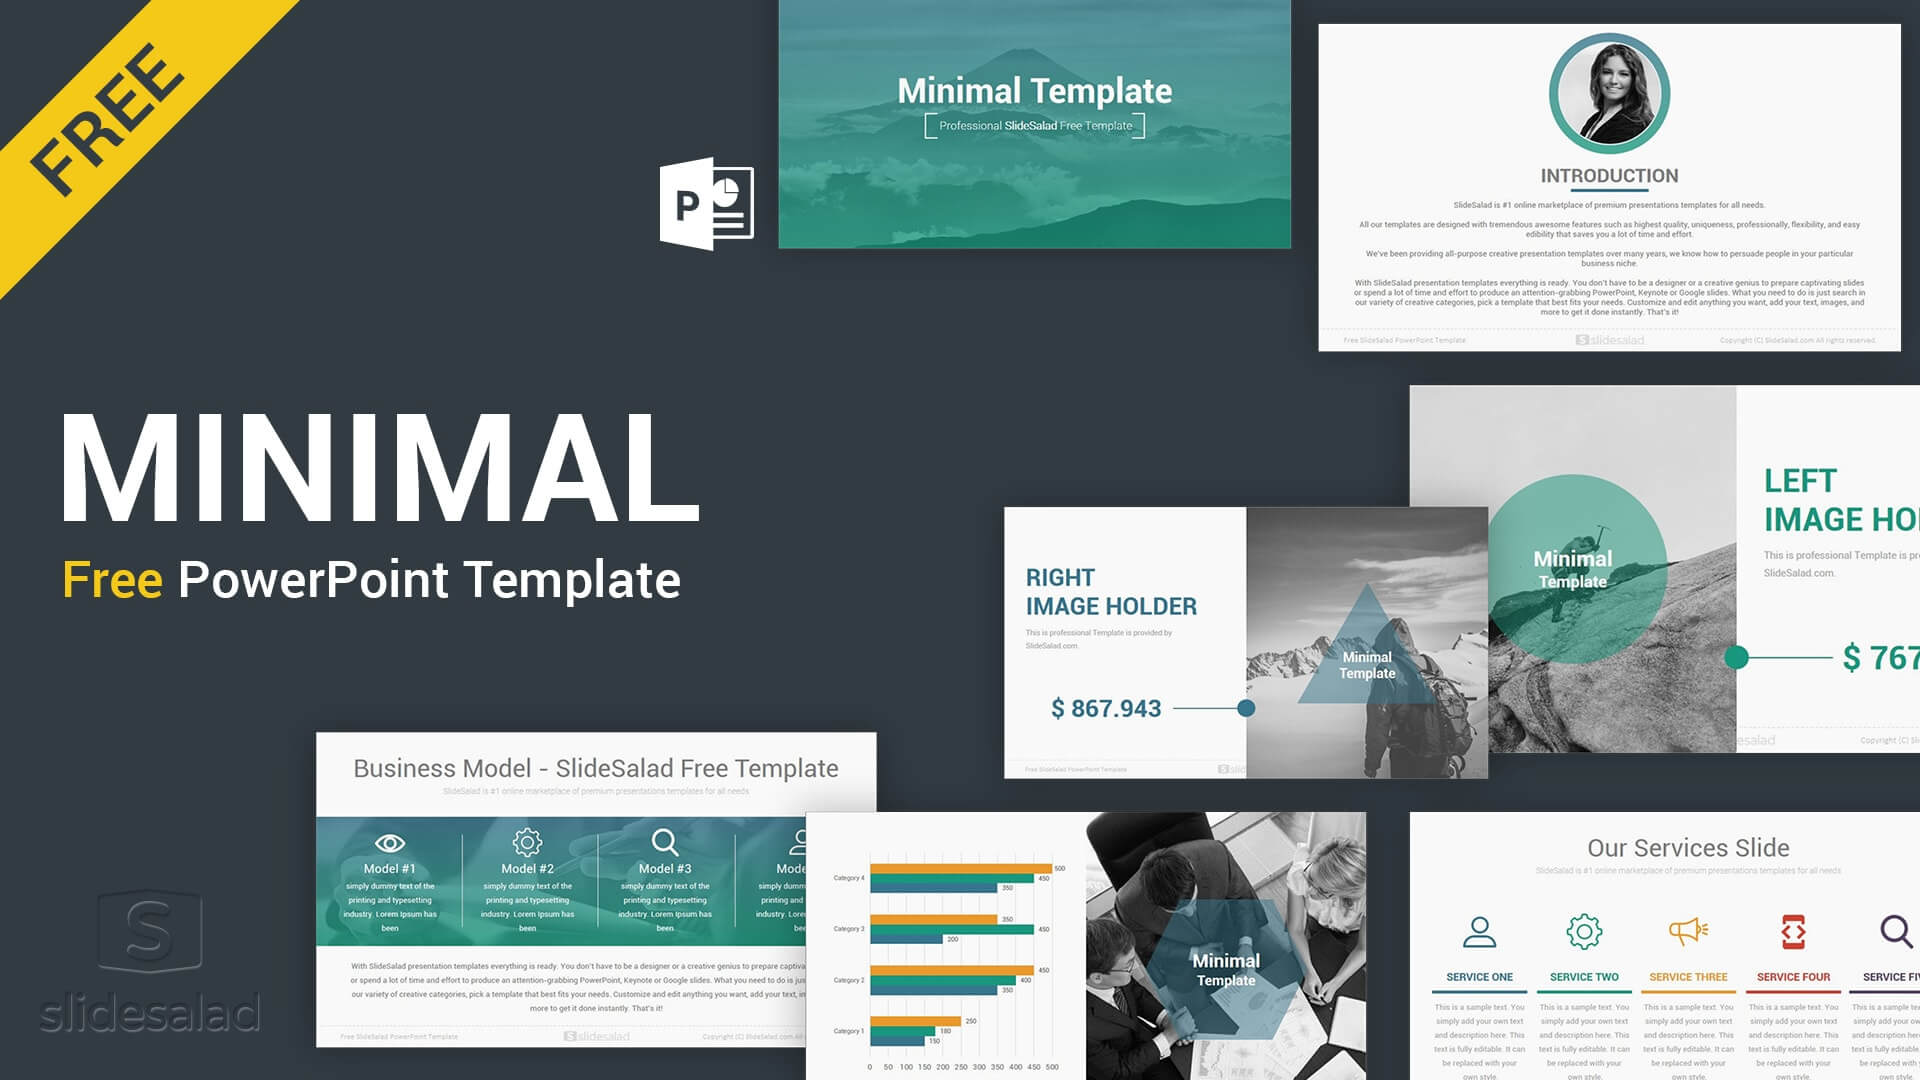 Minimal Free Download Powerpoint Template - Slidesalad in Free Powerpoint Presentation Templates Downloads